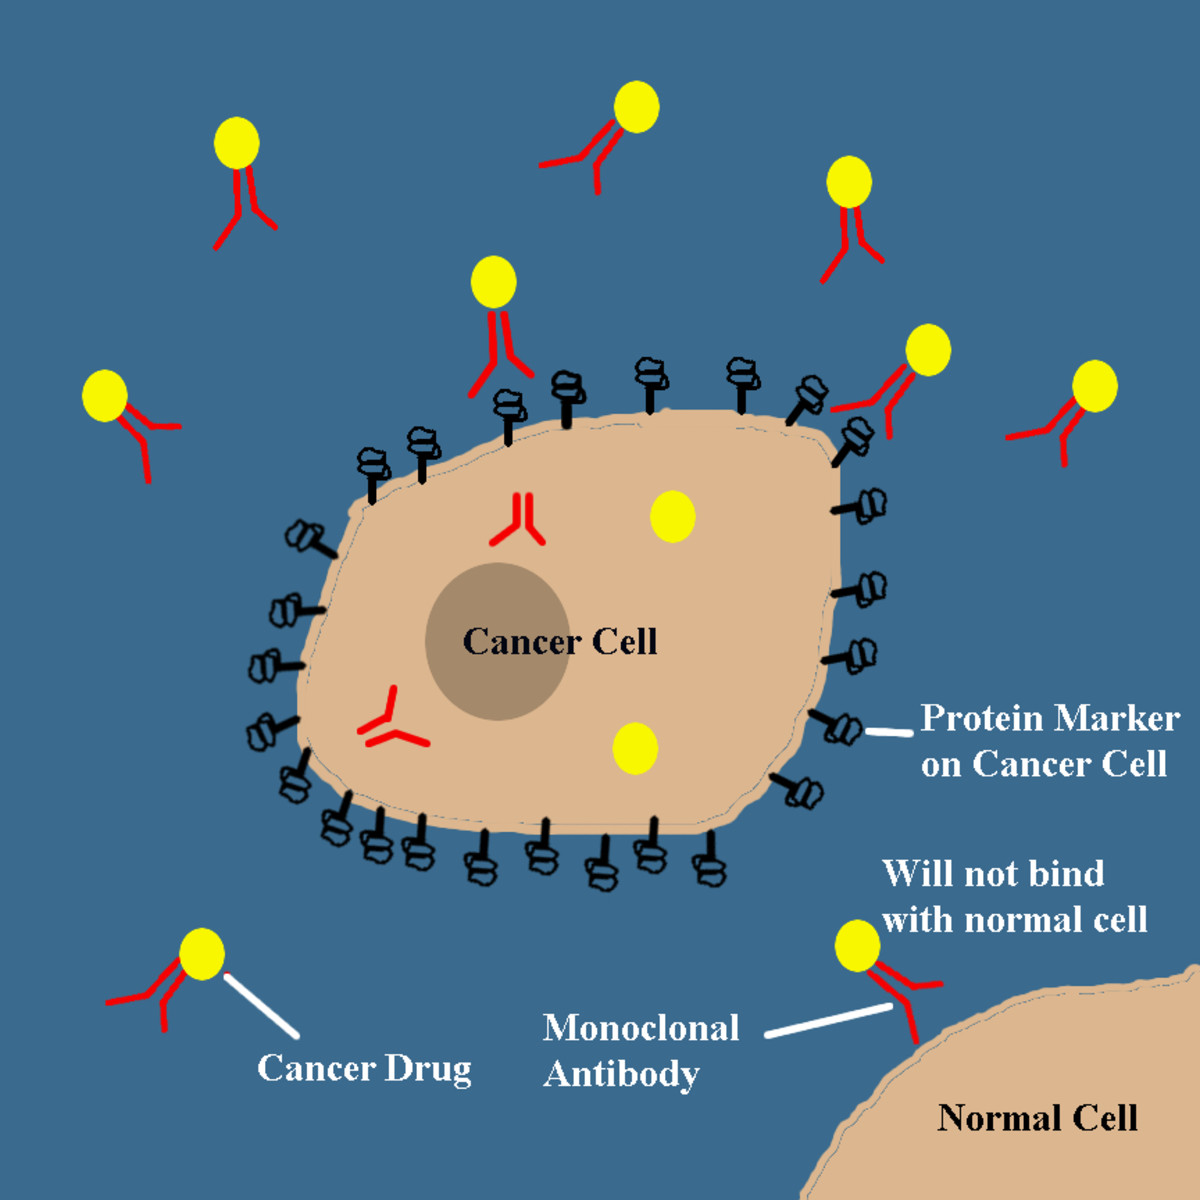 Monoclonal antibodies are able to target specific markers on cancer cells to deliver drugs or radioactive isotopes. The antibodies will not affect normal cells.